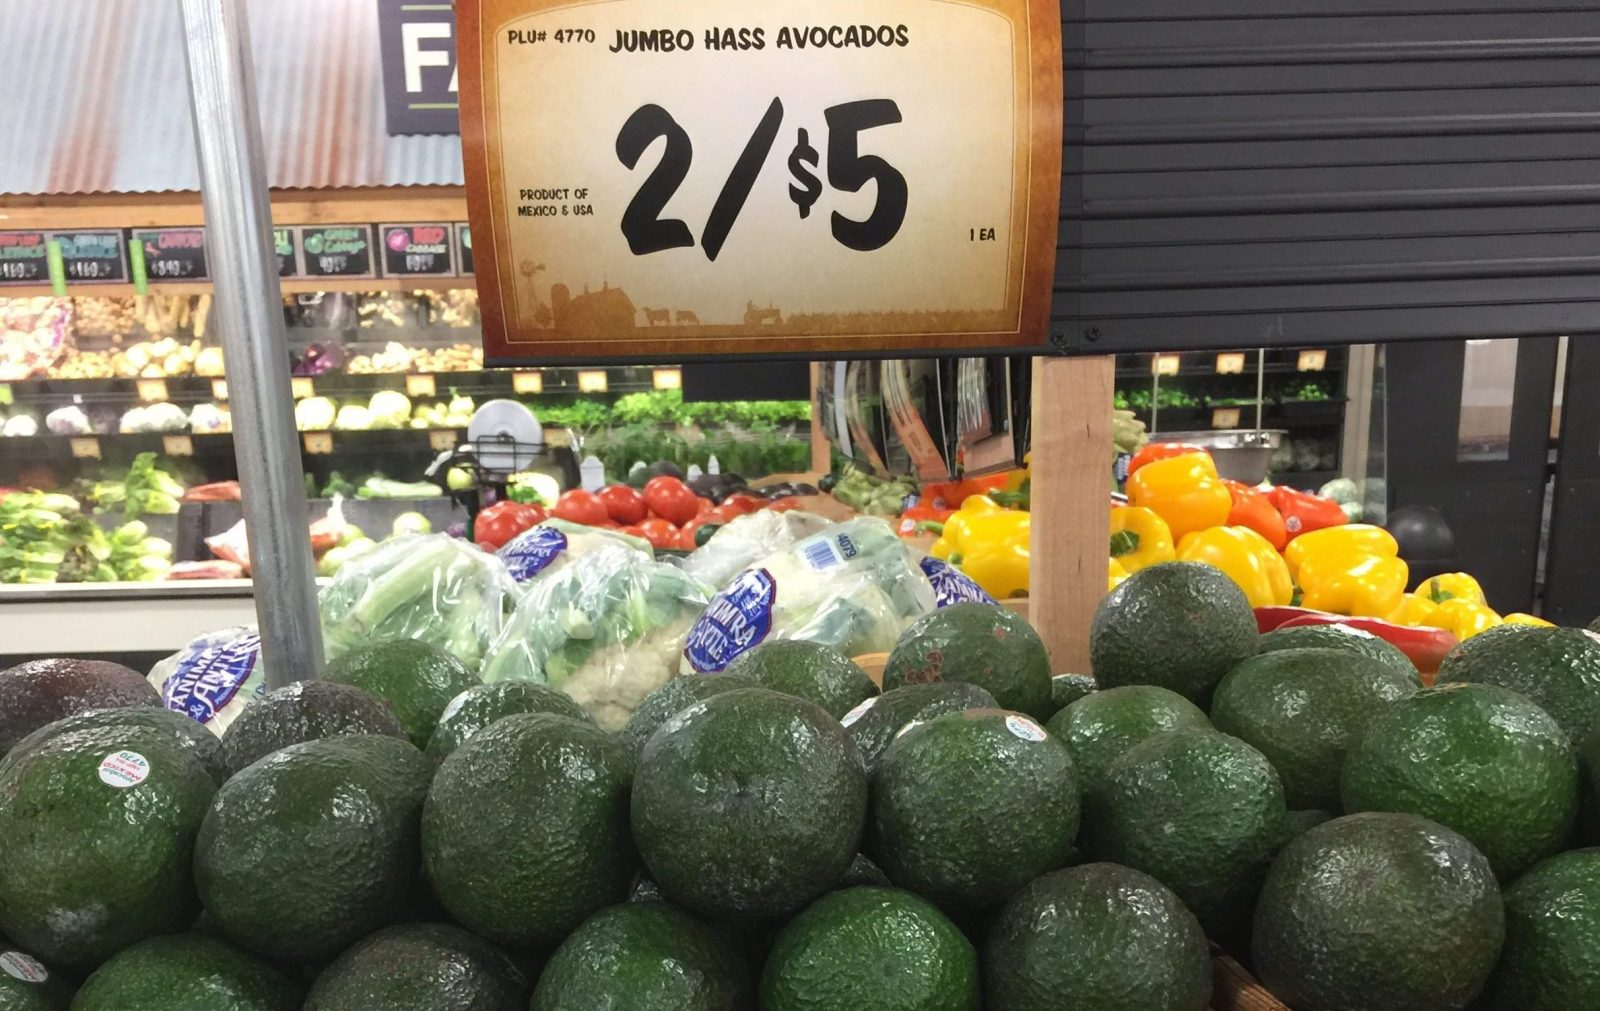 Avocado Cartels: The Violent Reality Behind